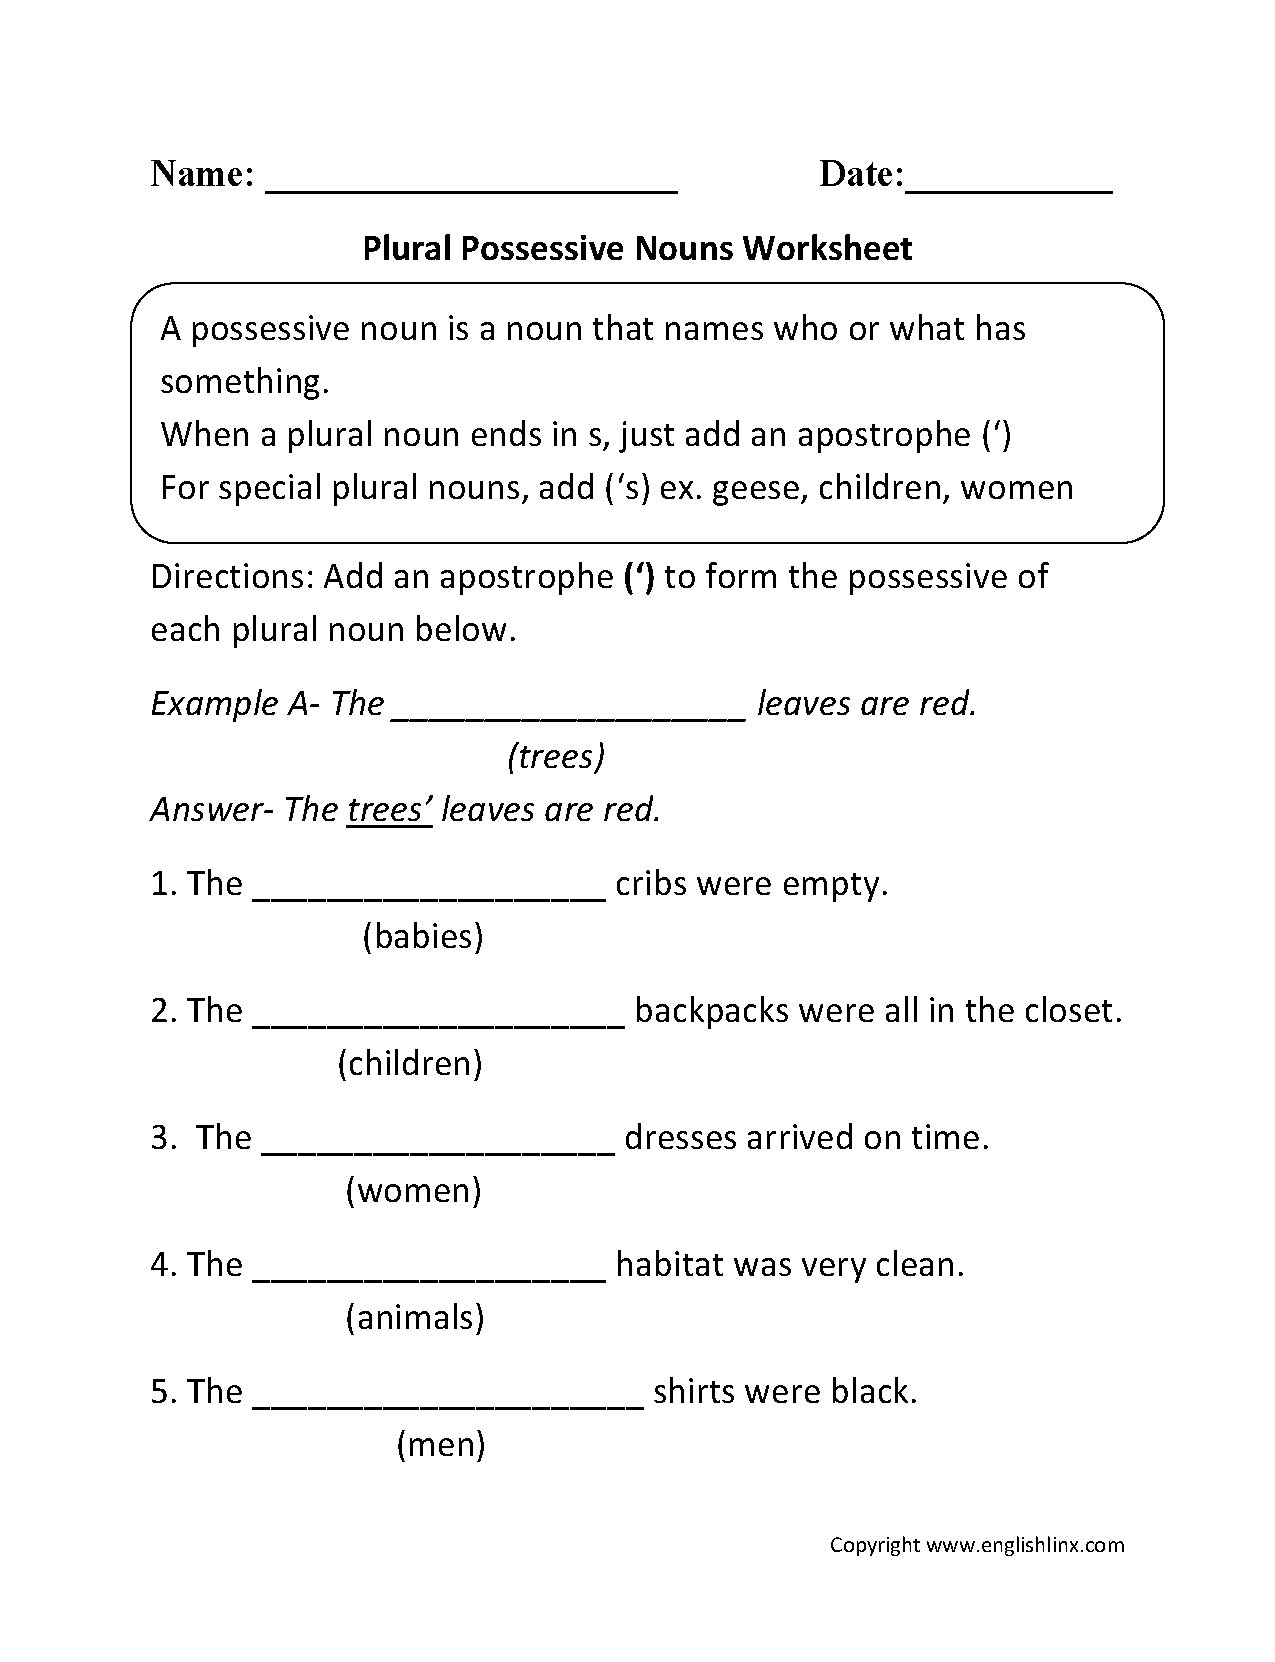 Aldiablosus  Stunning Nouns Worksheets  Possessive Nouns Worksheets With Handsome Possessive Nouns Worksheets With Cool Teach Your Child To Read In  Easy Lessons Worksheets Also Free Sunday School Worksheets In Addition Polymer Worksheet And Science  Diffusion And Osmosis Worksheet As Well As Trigonometric Ratios Worksheet Pdf Additionally Reading With Understanding Worksheets From Englishlinxcom With Aldiablosus  Handsome Nouns Worksheets  Possessive Nouns Worksheets With Cool Possessive Nouns Worksheets And Stunning Teach Your Child To Read In  Easy Lessons Worksheets Also Free Sunday School Worksheets In Addition Polymer Worksheet From Englishlinxcom